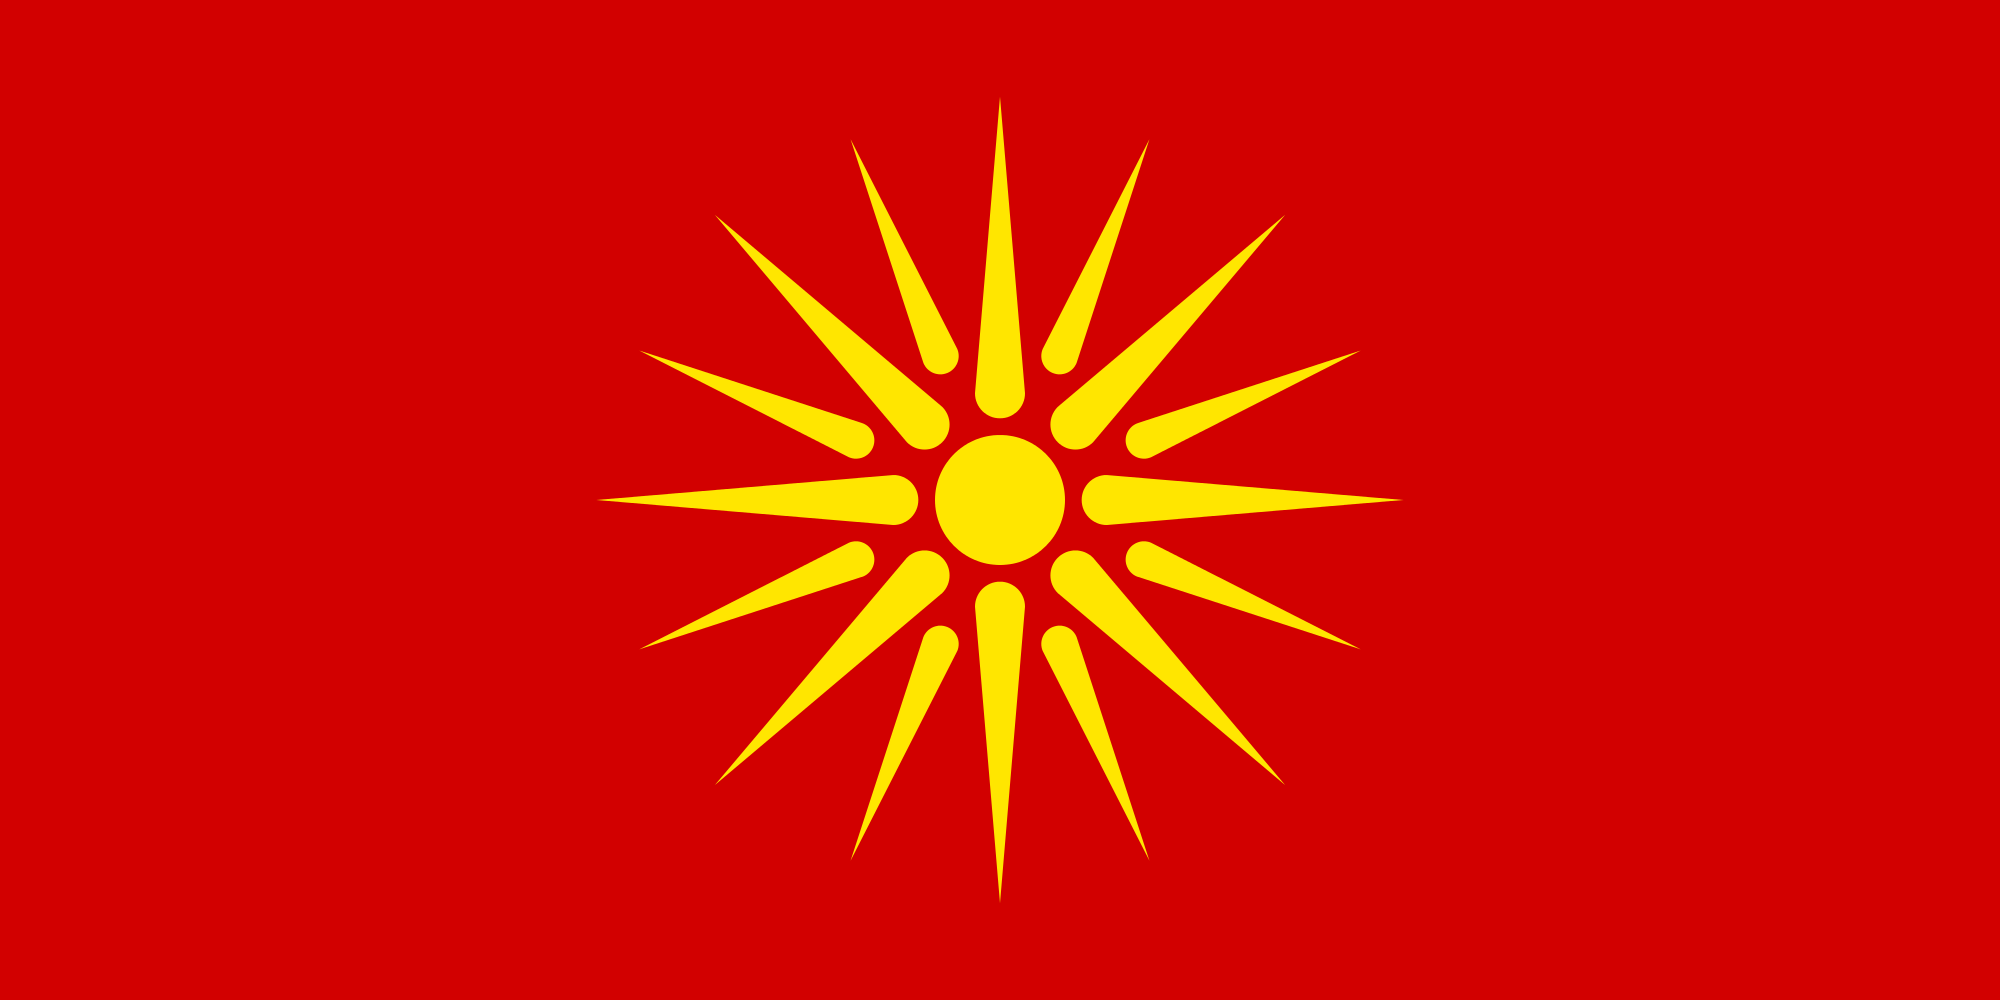 flag-of-the-republic-of-macedonia-1992-1995